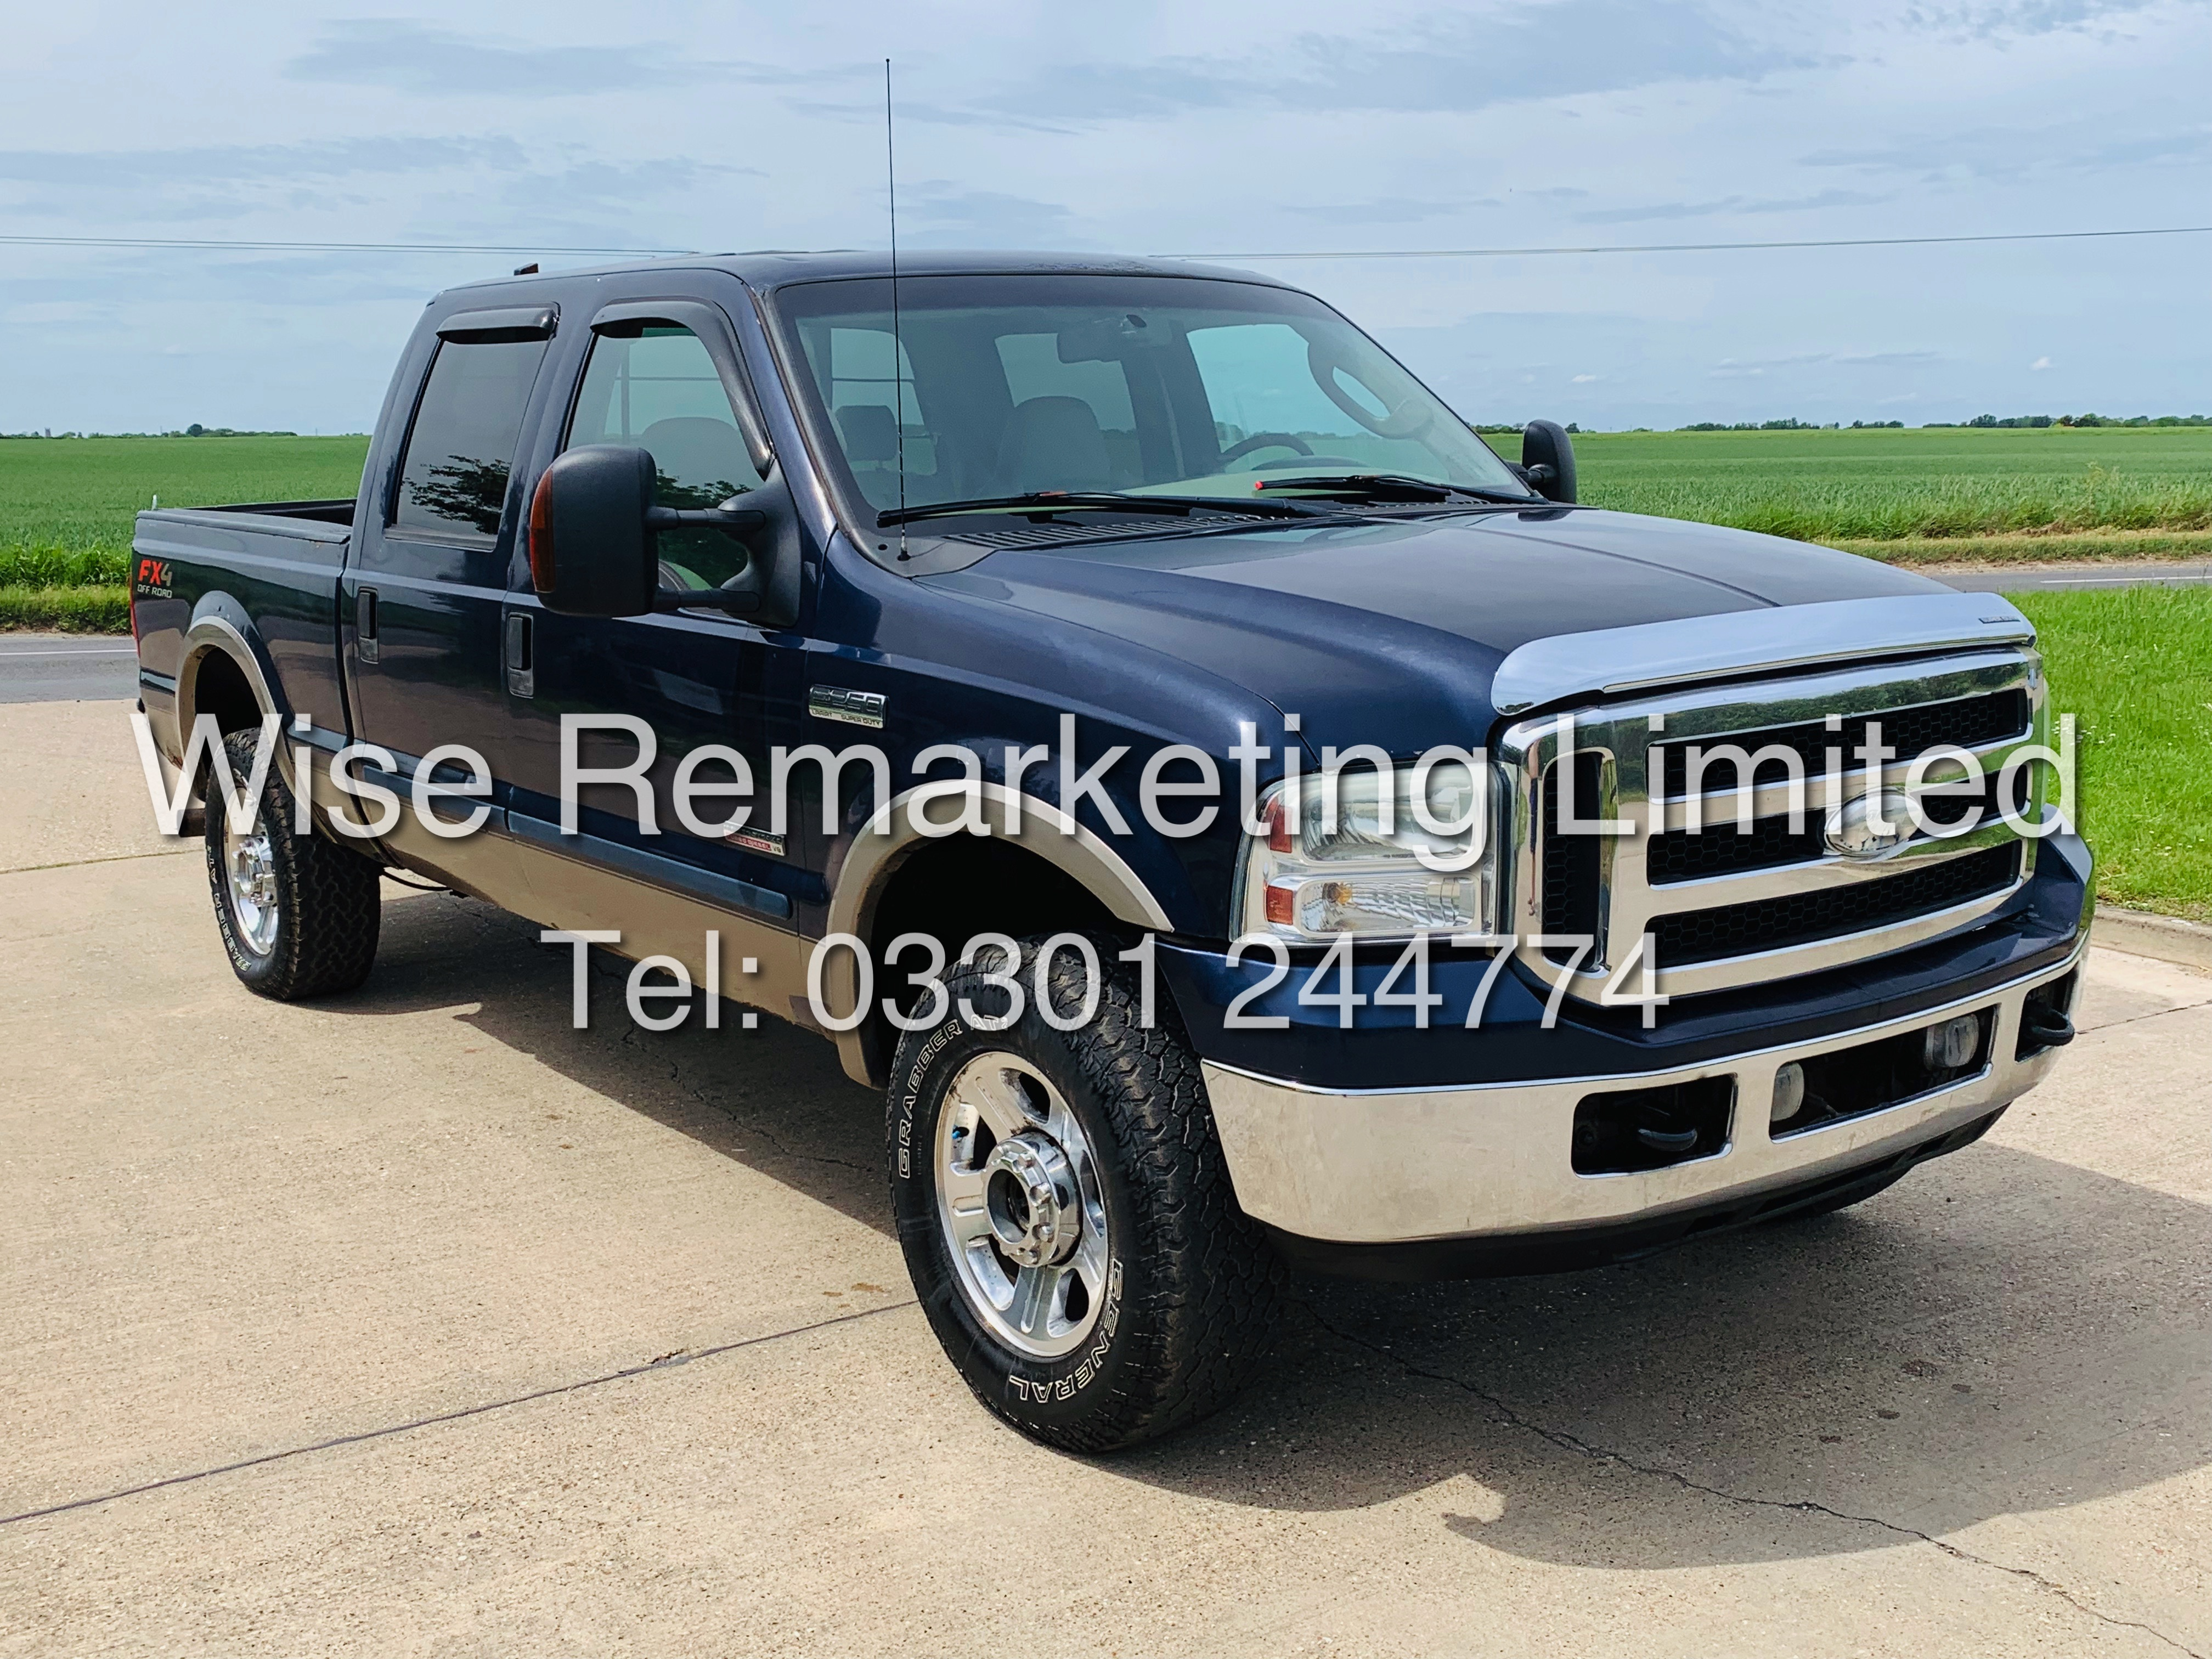 FORD F-250 6.0L V8**DIESEL**2007**4X4*LARIAT SPEC**DOUBLE-CAB**ULTRA RARE**FRESH IMPORT** - Image 4 of 18